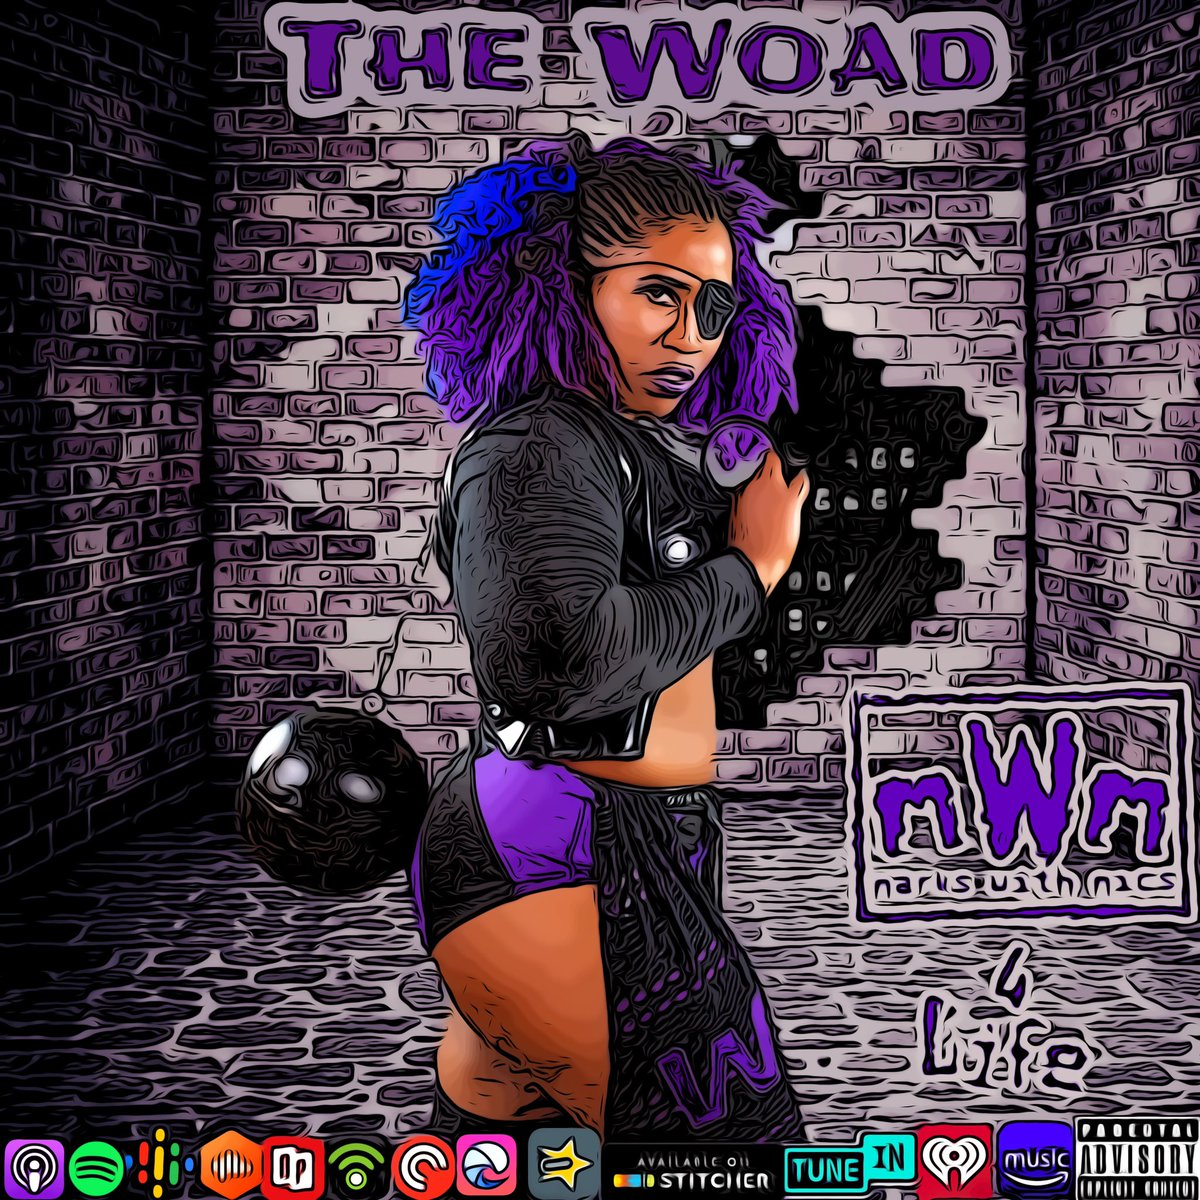 🚨New Episode🚨 On this episode @Mr6Foot9 & @ElCheech216  interview @_TheWOAD  Topics  - Dream Matches  - Women's Evoultion - Say it Loud Event.  - Diversity in wrestling - Women are not all the same - #WomensHistoryMonth  - And More Click the link below